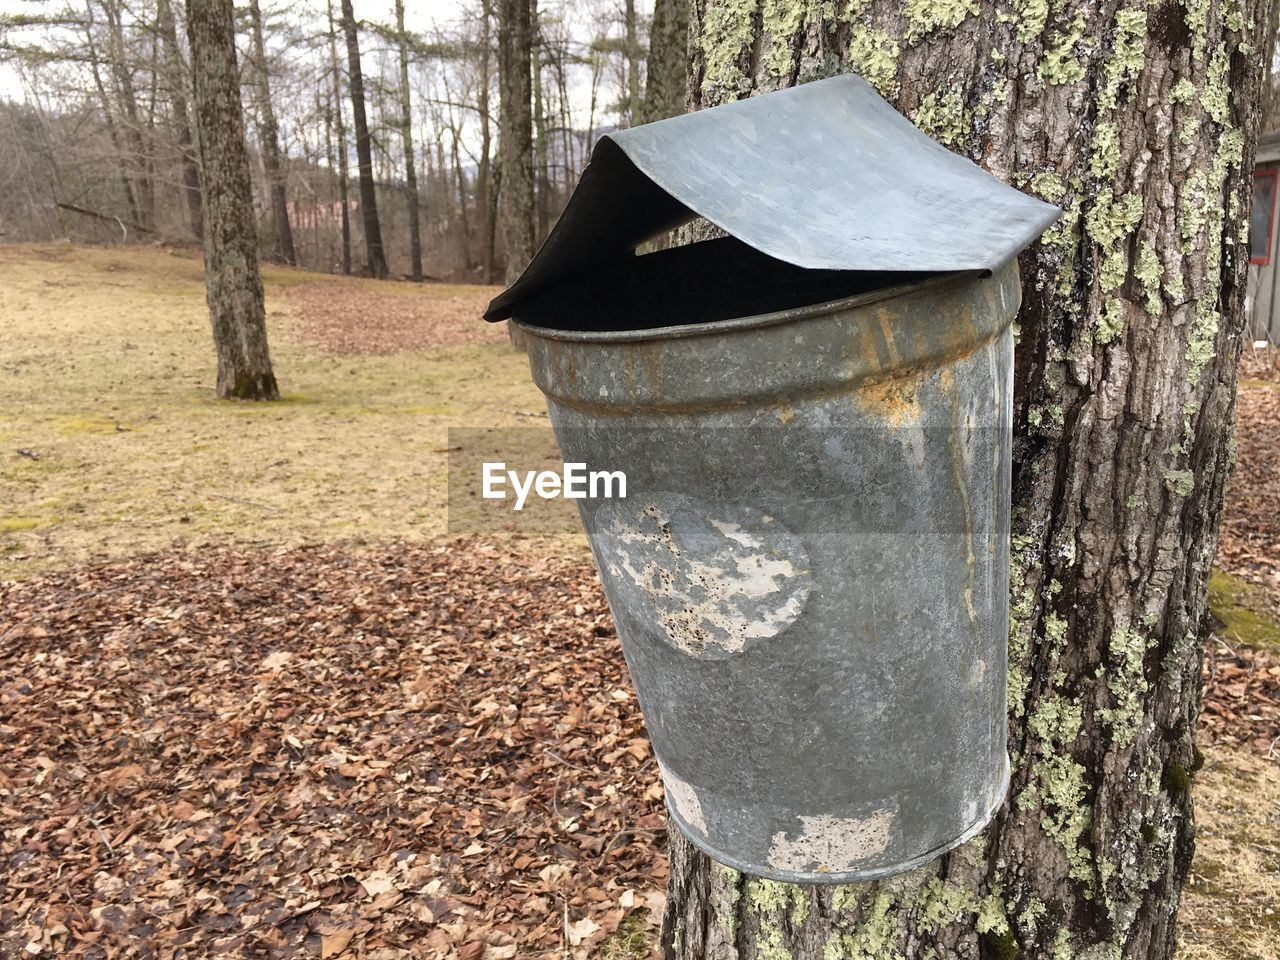 tree, land, plant, trunk, tree trunk, nature, day, no people, forest, environment, outdoors, garbage bin, wood - material, recycling bin, field, landscape, non-urban scene, metal, woodland, tranquility